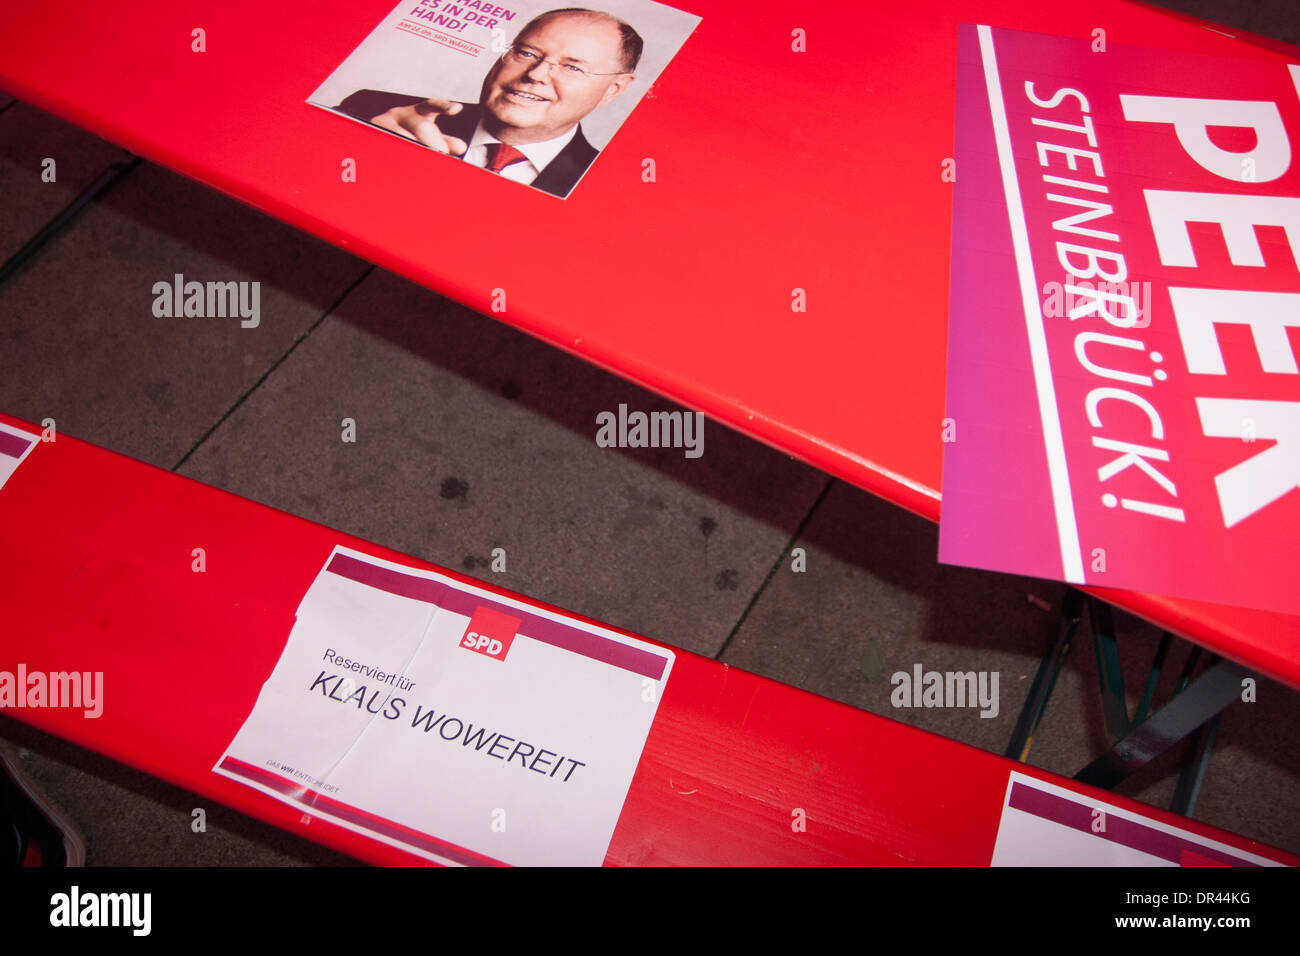 Pre-election party of SPD at Alexanderplatz in Berlin. - Stock Image